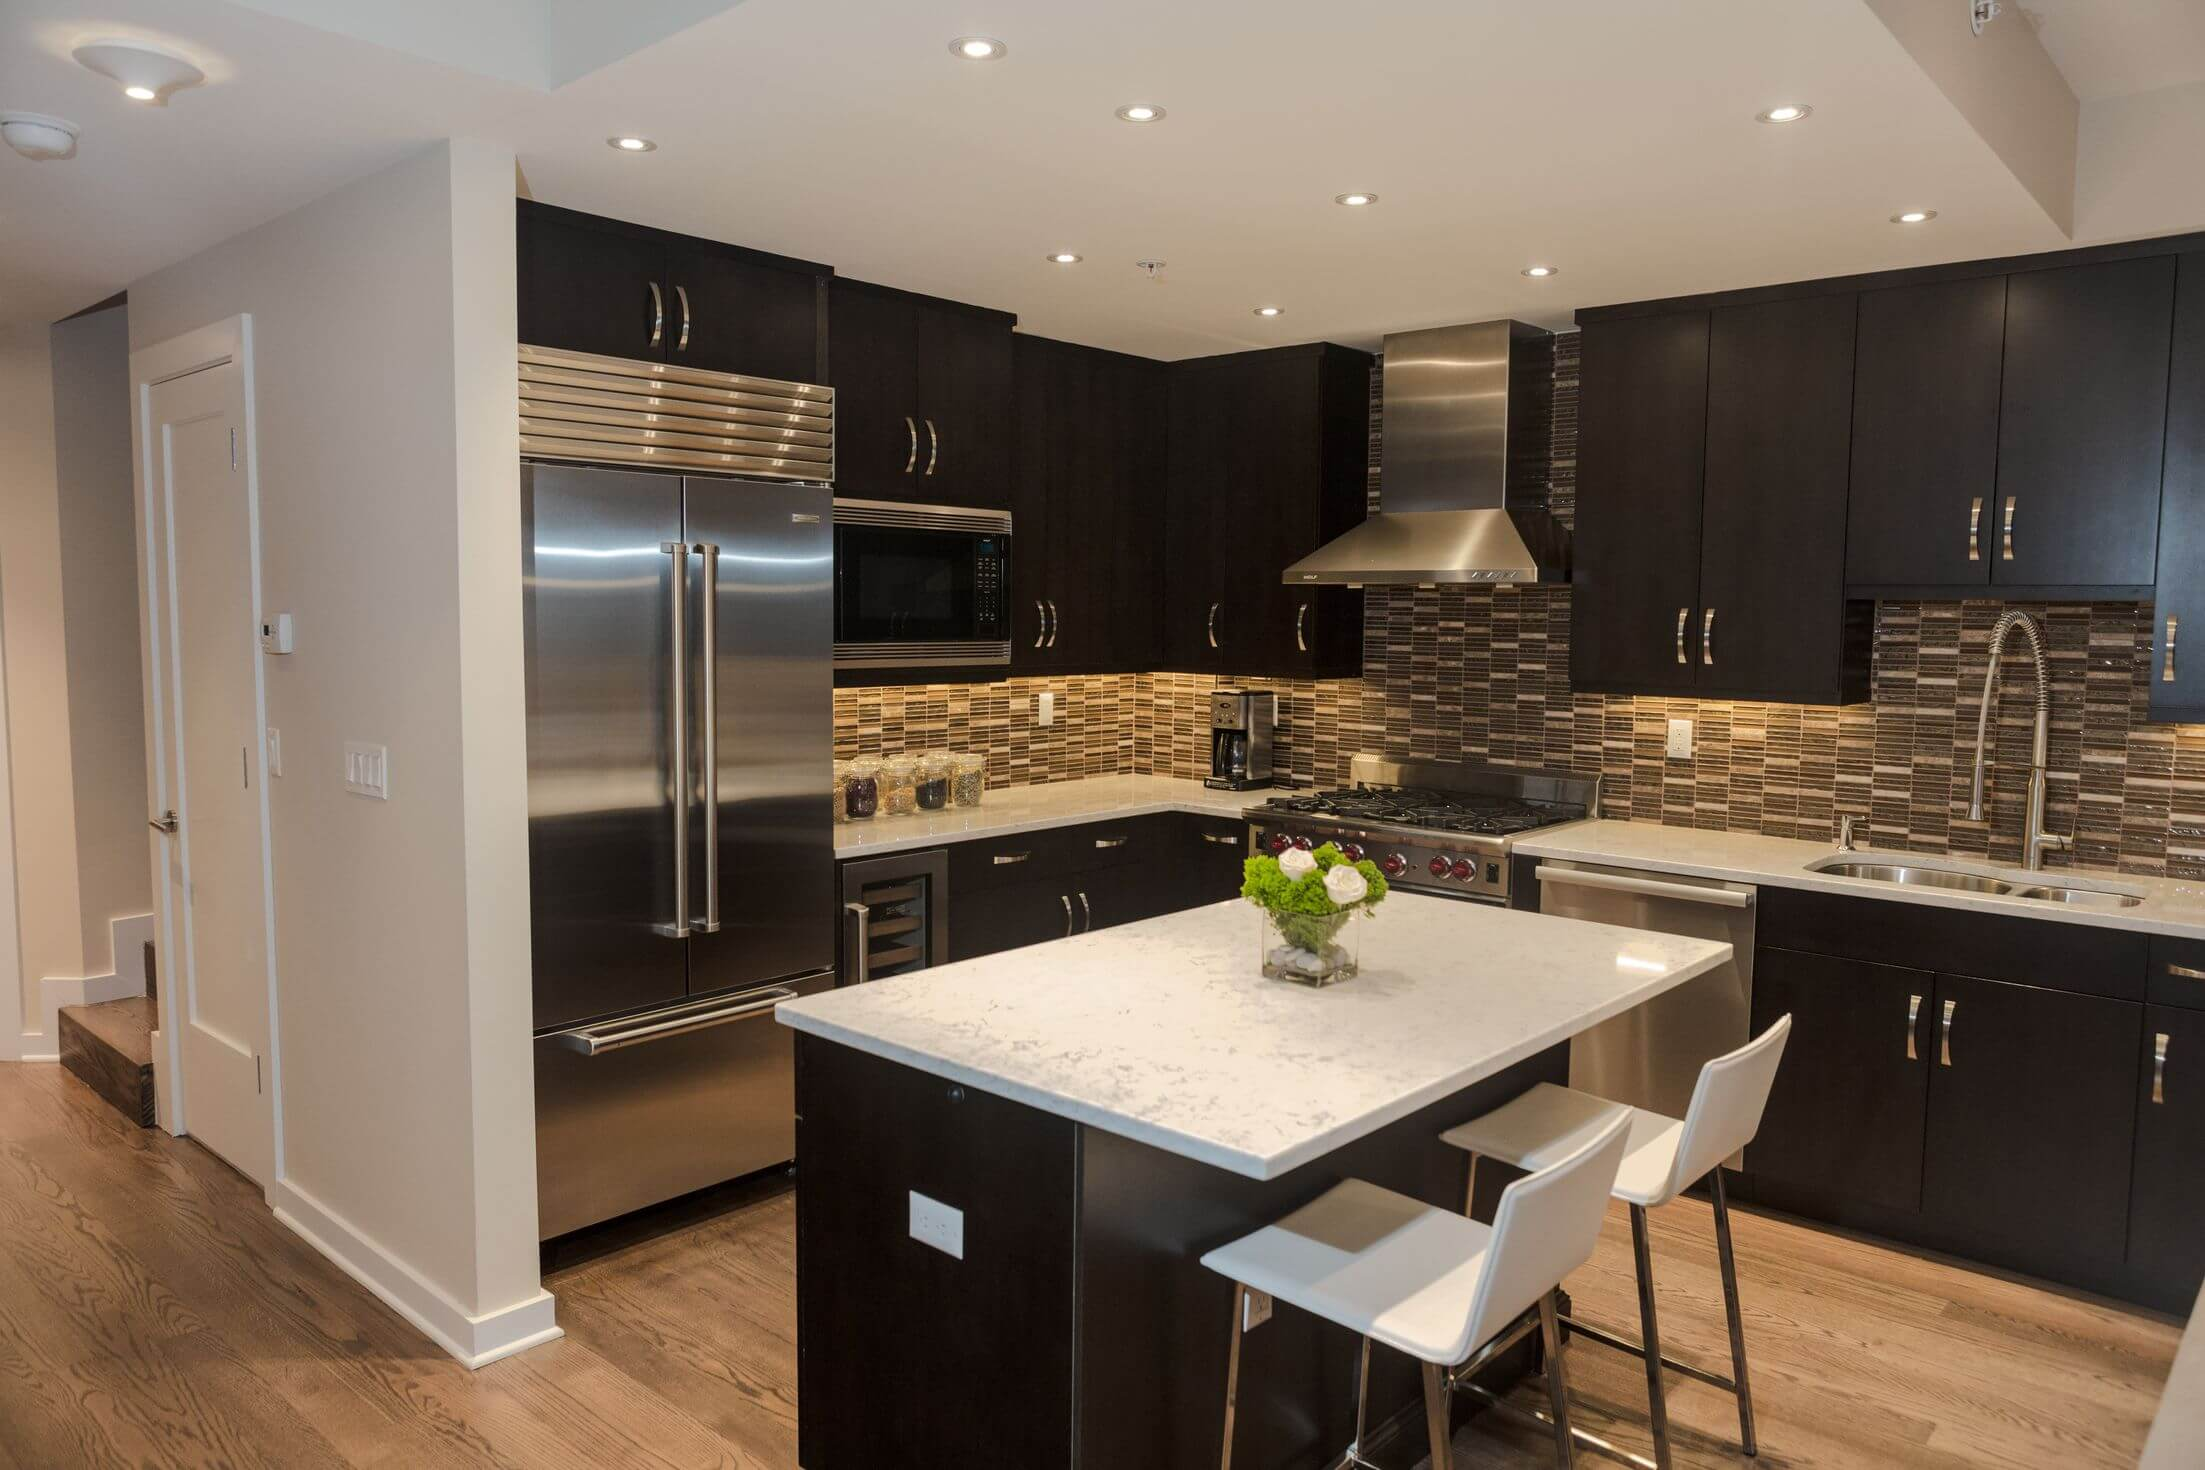 Black wood cabinetry and island contrast with patterned tile backsplash, white marble countertops, and light natural hardwood flooring.